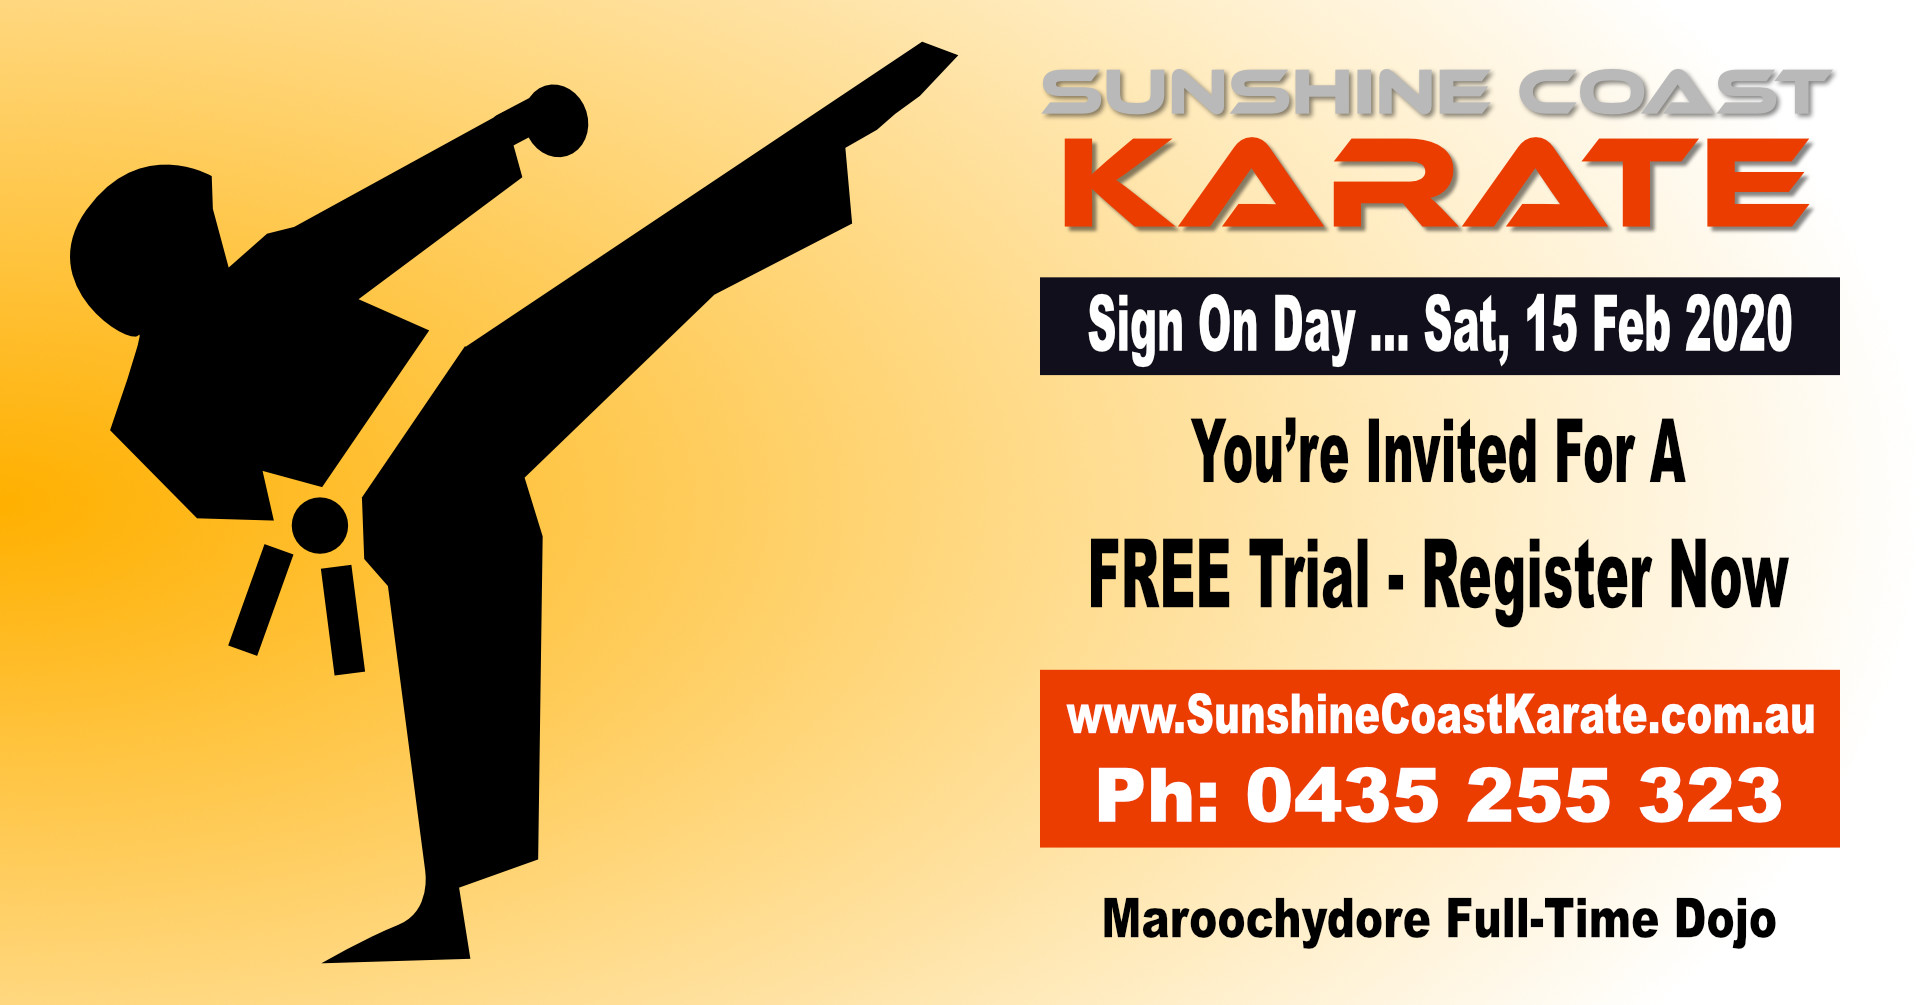 Karate Sign On Day (2020) - FREE Trial